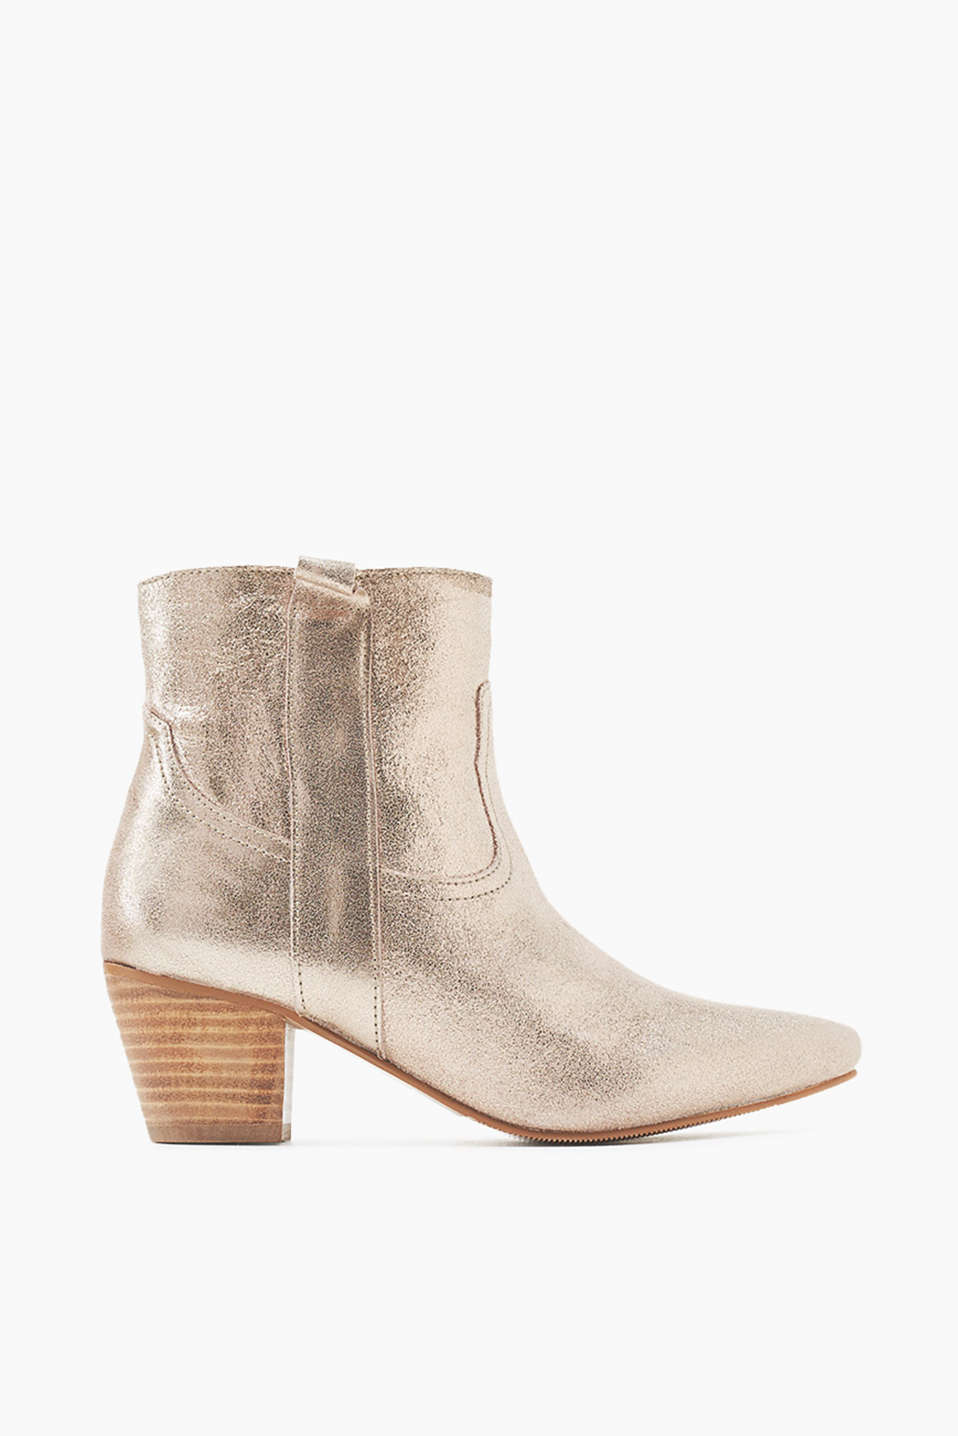 Ankle boots with a block heel and a practical zip on the inside, made of cowhide for a cool western look